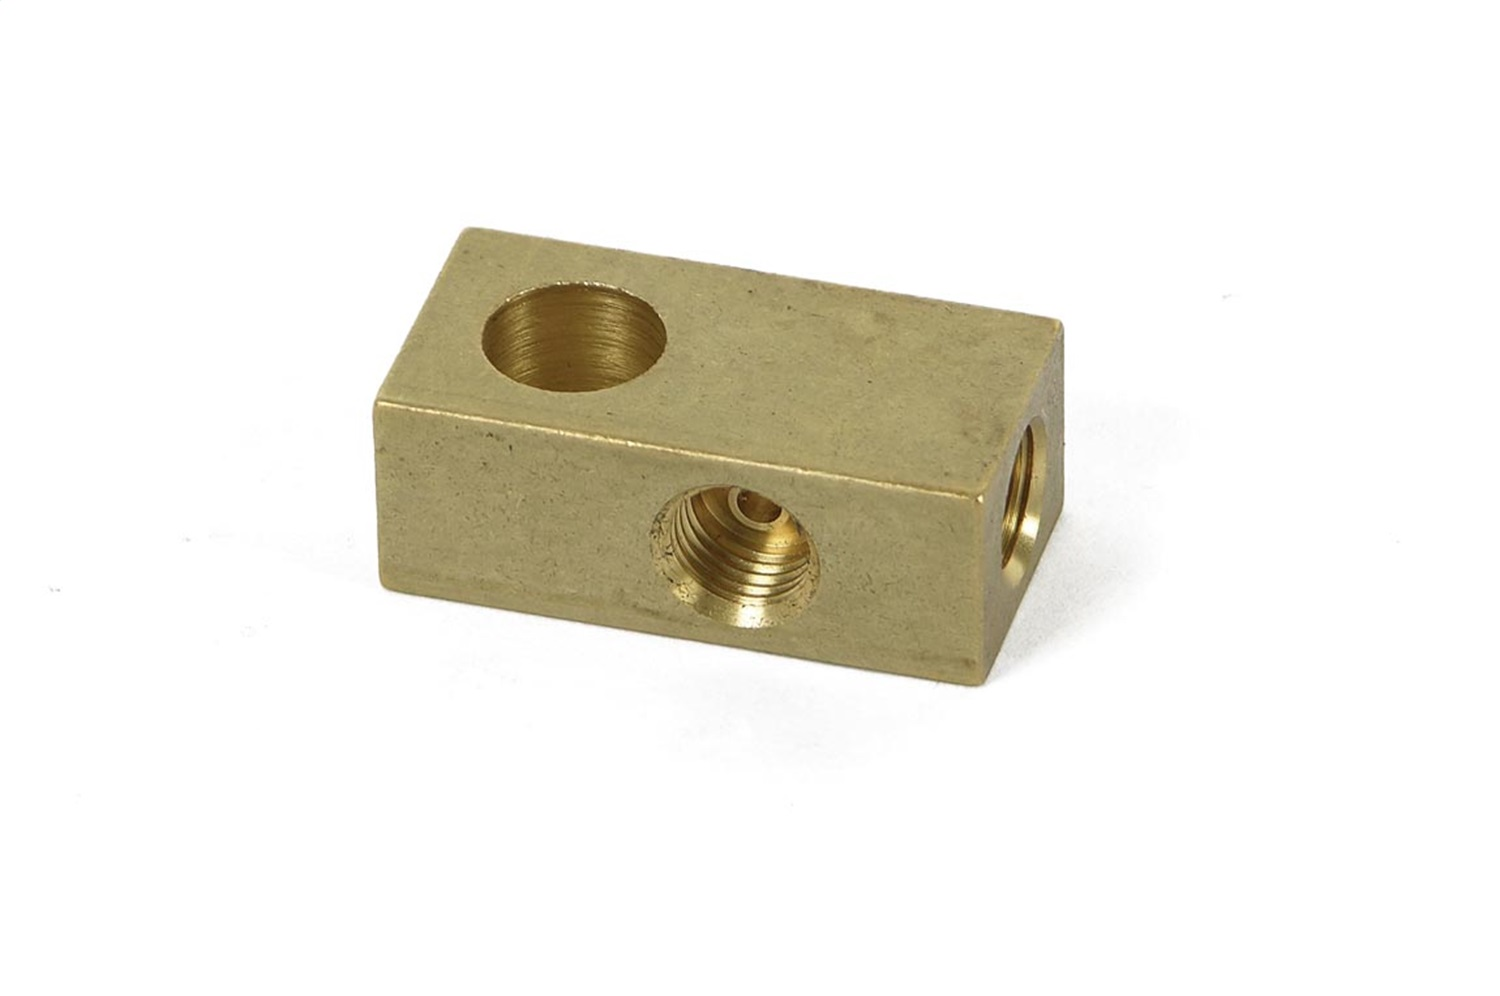 Earls Plumbing 972055ERL Brass Inverted Flare Brake Adapter Tee